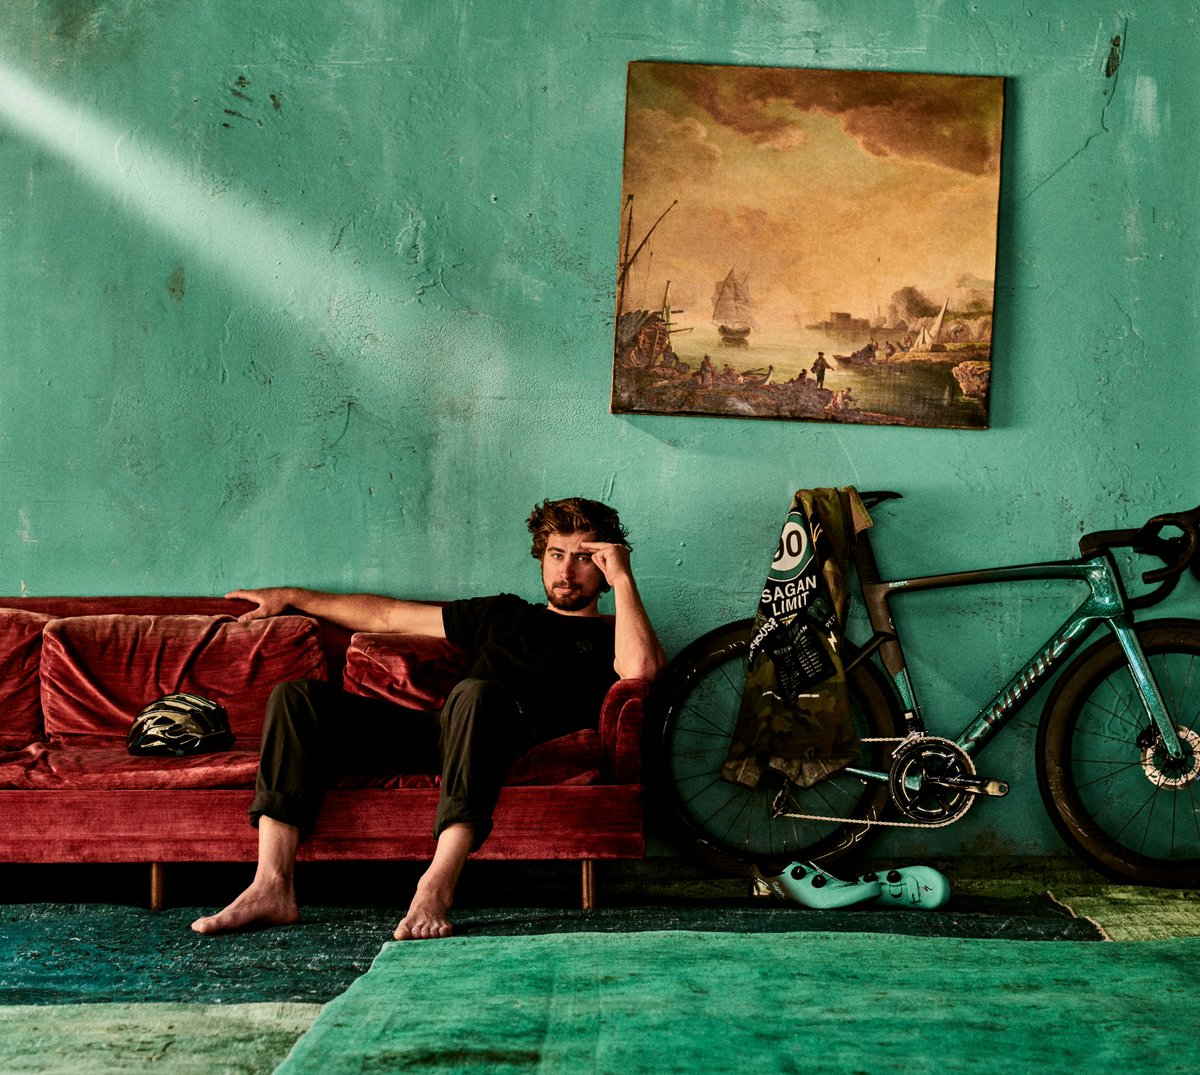 d398af80118 The Sagan Collection represents a collaboration between @iamspecialized and  I, and all the hard work and effort we put into our passions.